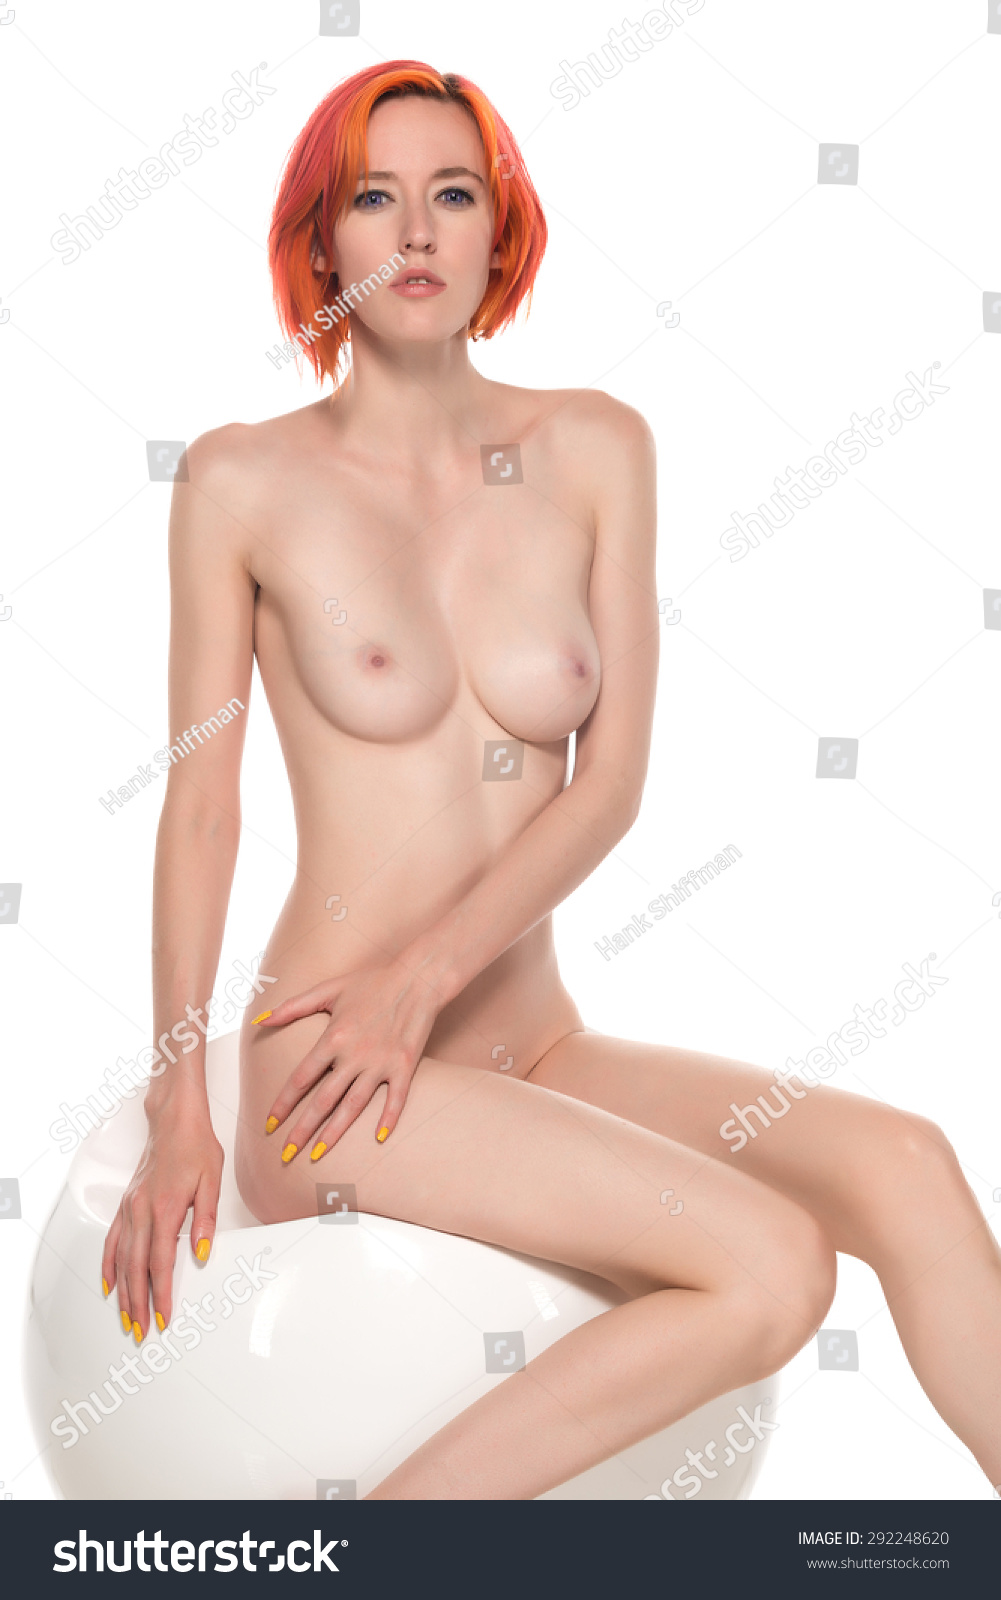 Red hair nude